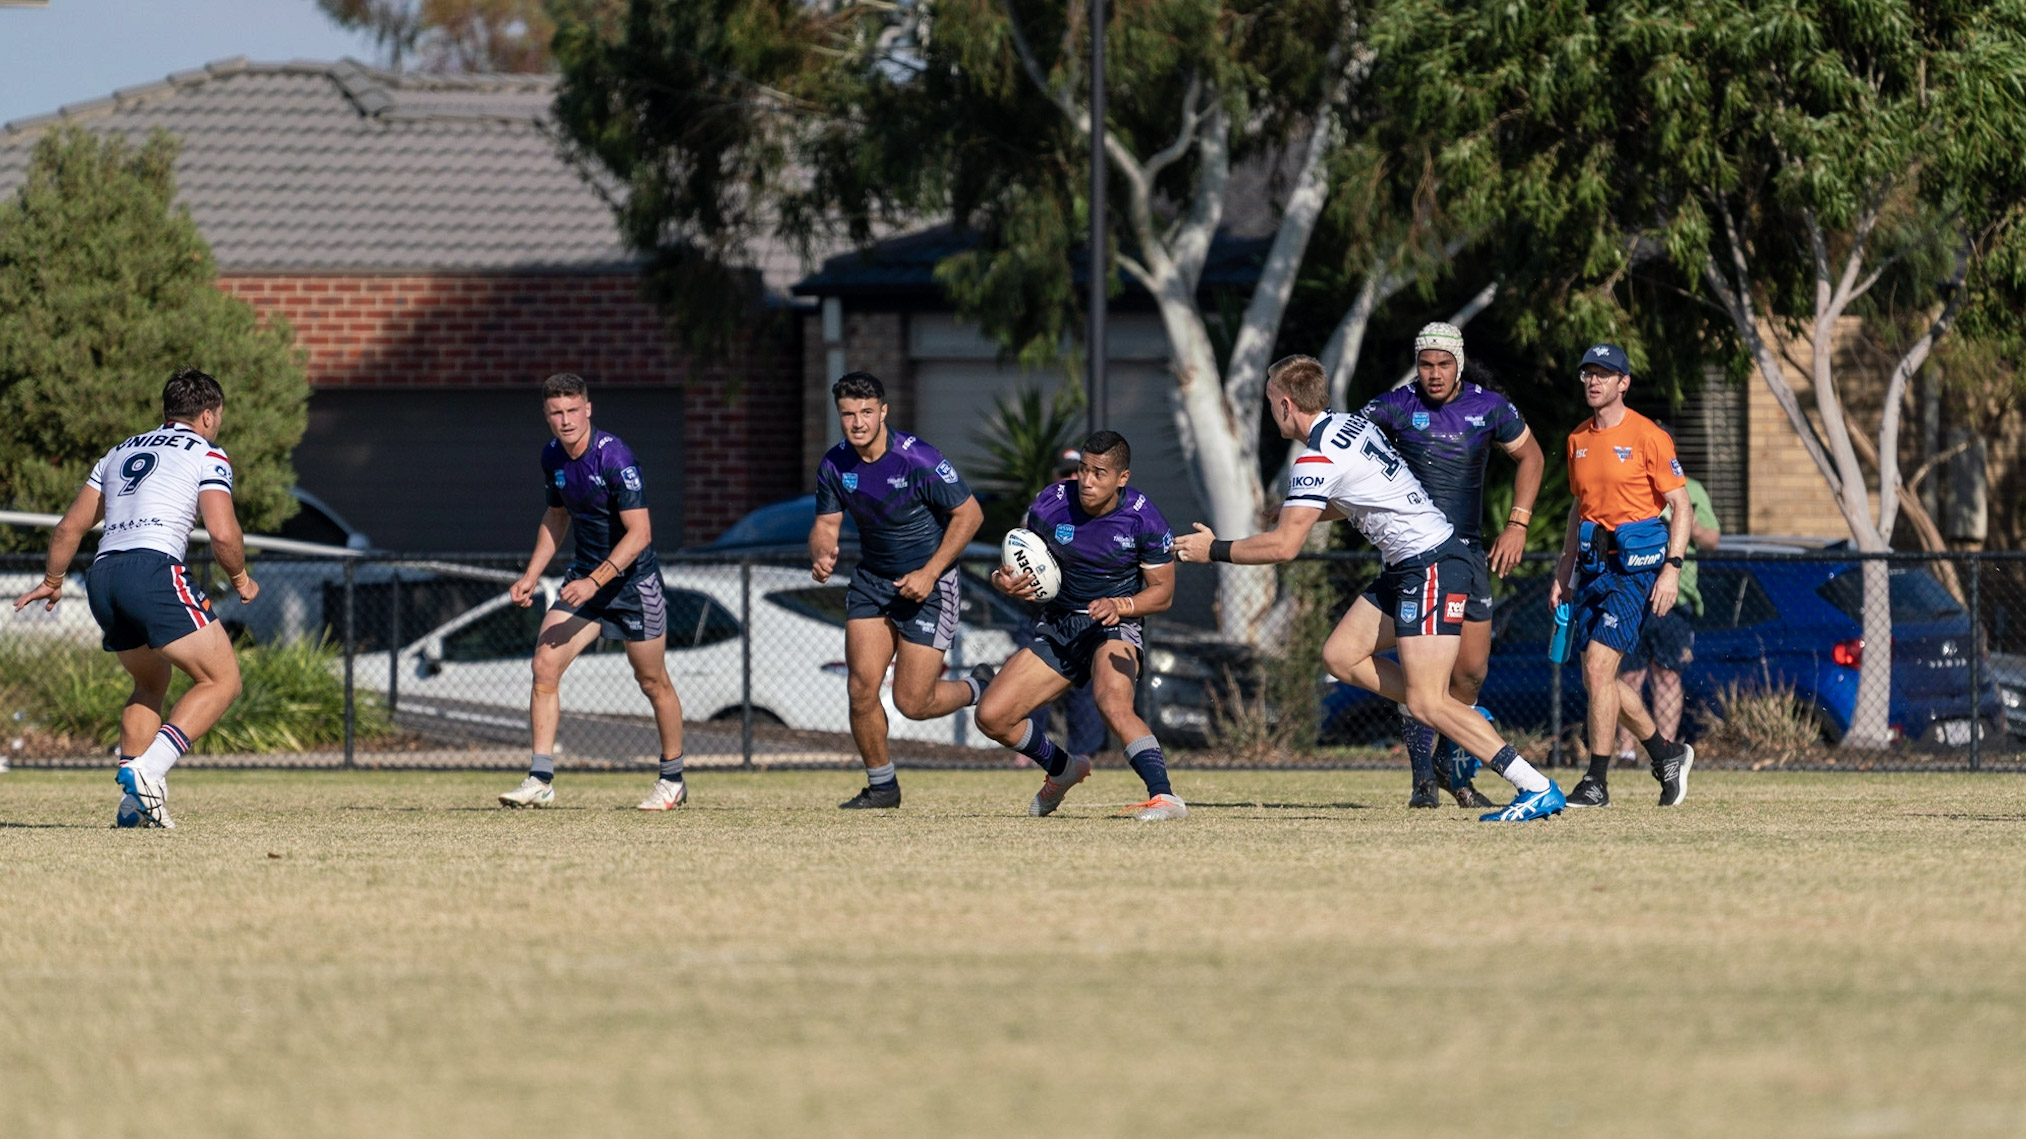 North Sydney Bears move to third in NSW Cup, Victoria gets first win in Flegg